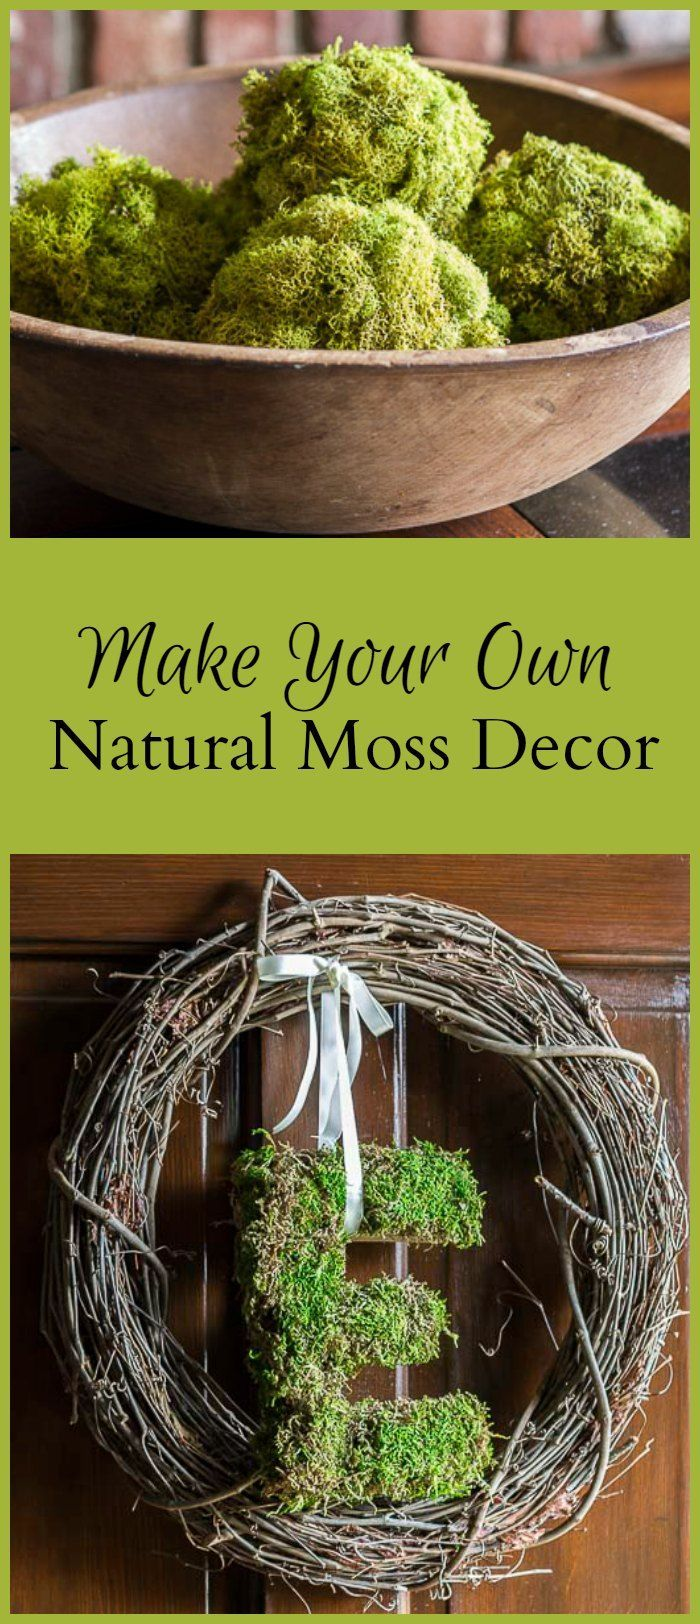 Bring a little of bit of the beauty of nature inside, by creating gorgeous natural moss decor, with just a few simple materials.